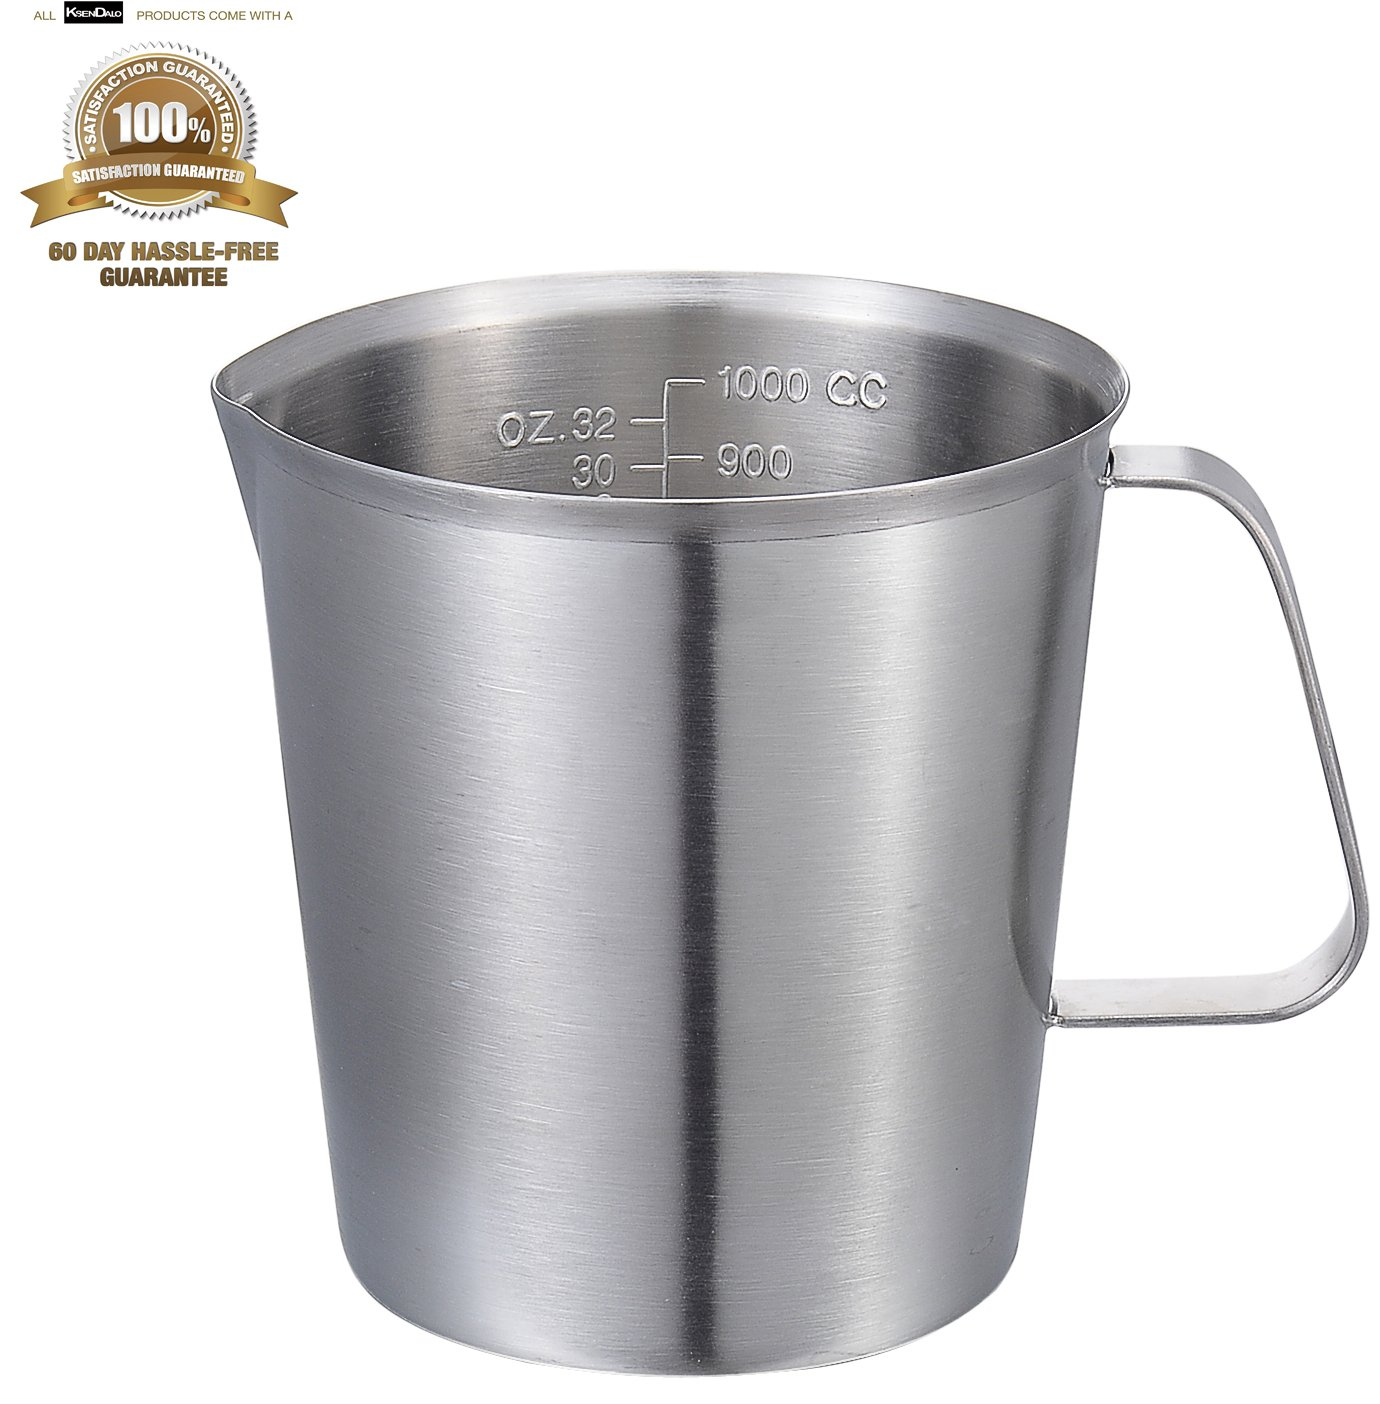 1000mL Measuring Cup, KSENDALO Stainless Steel Measuring Cup with Marking with Handle, 32 Ounces (1.0 Liter, 4 Cup)